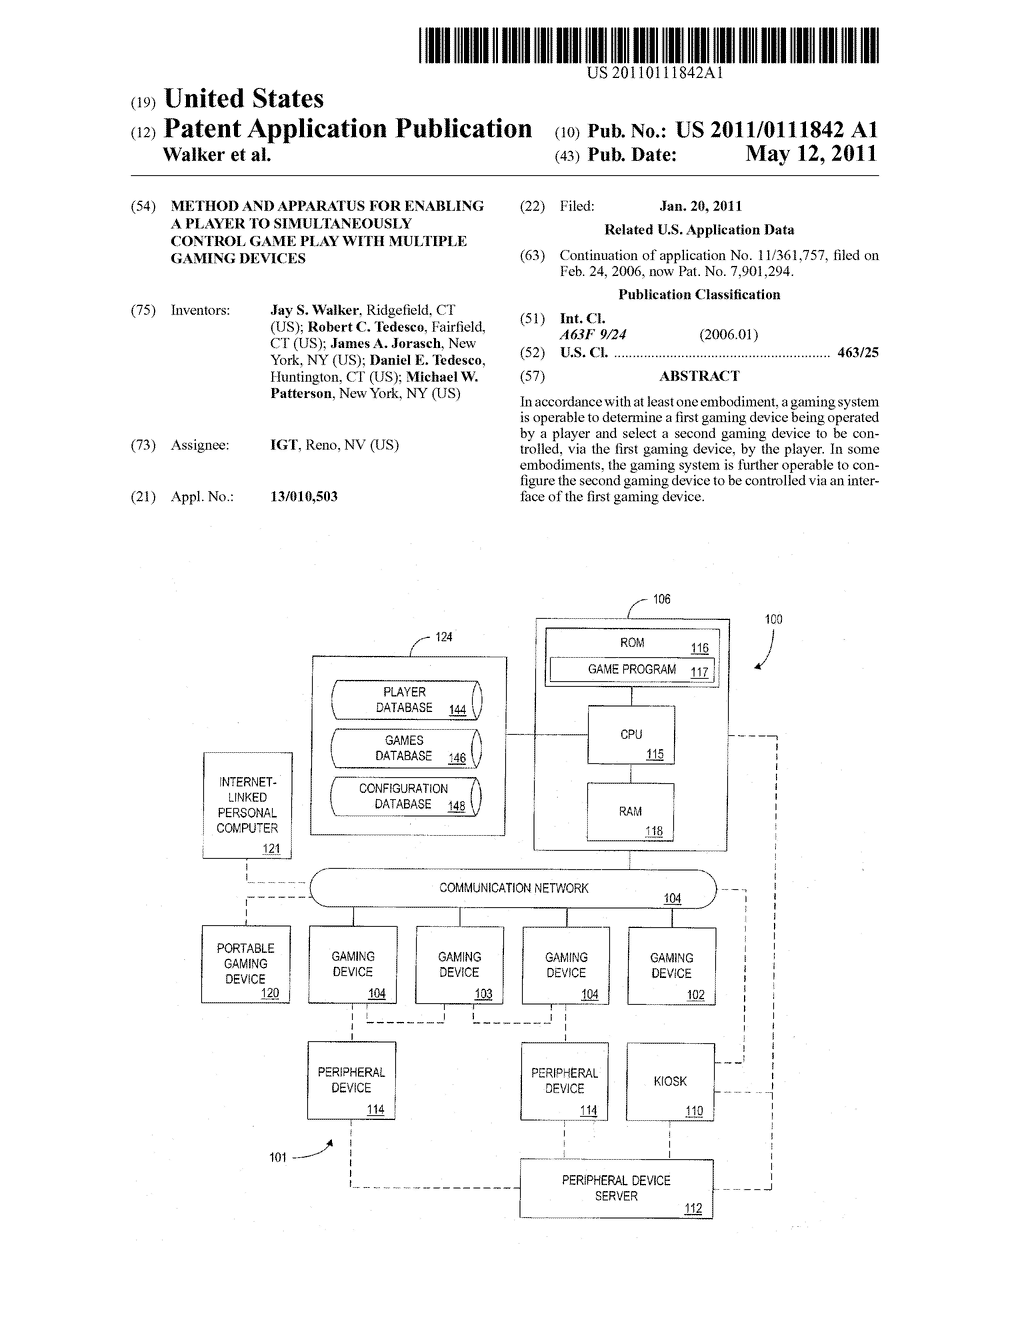 METHOD AND APPARATUS FOR ENABLING A PLAYER TO SIMULTANEOUSLY CONTROL GAME PLAY WITH MULTIPLE GAMING DEVICES - diagram, schematic, and image 01